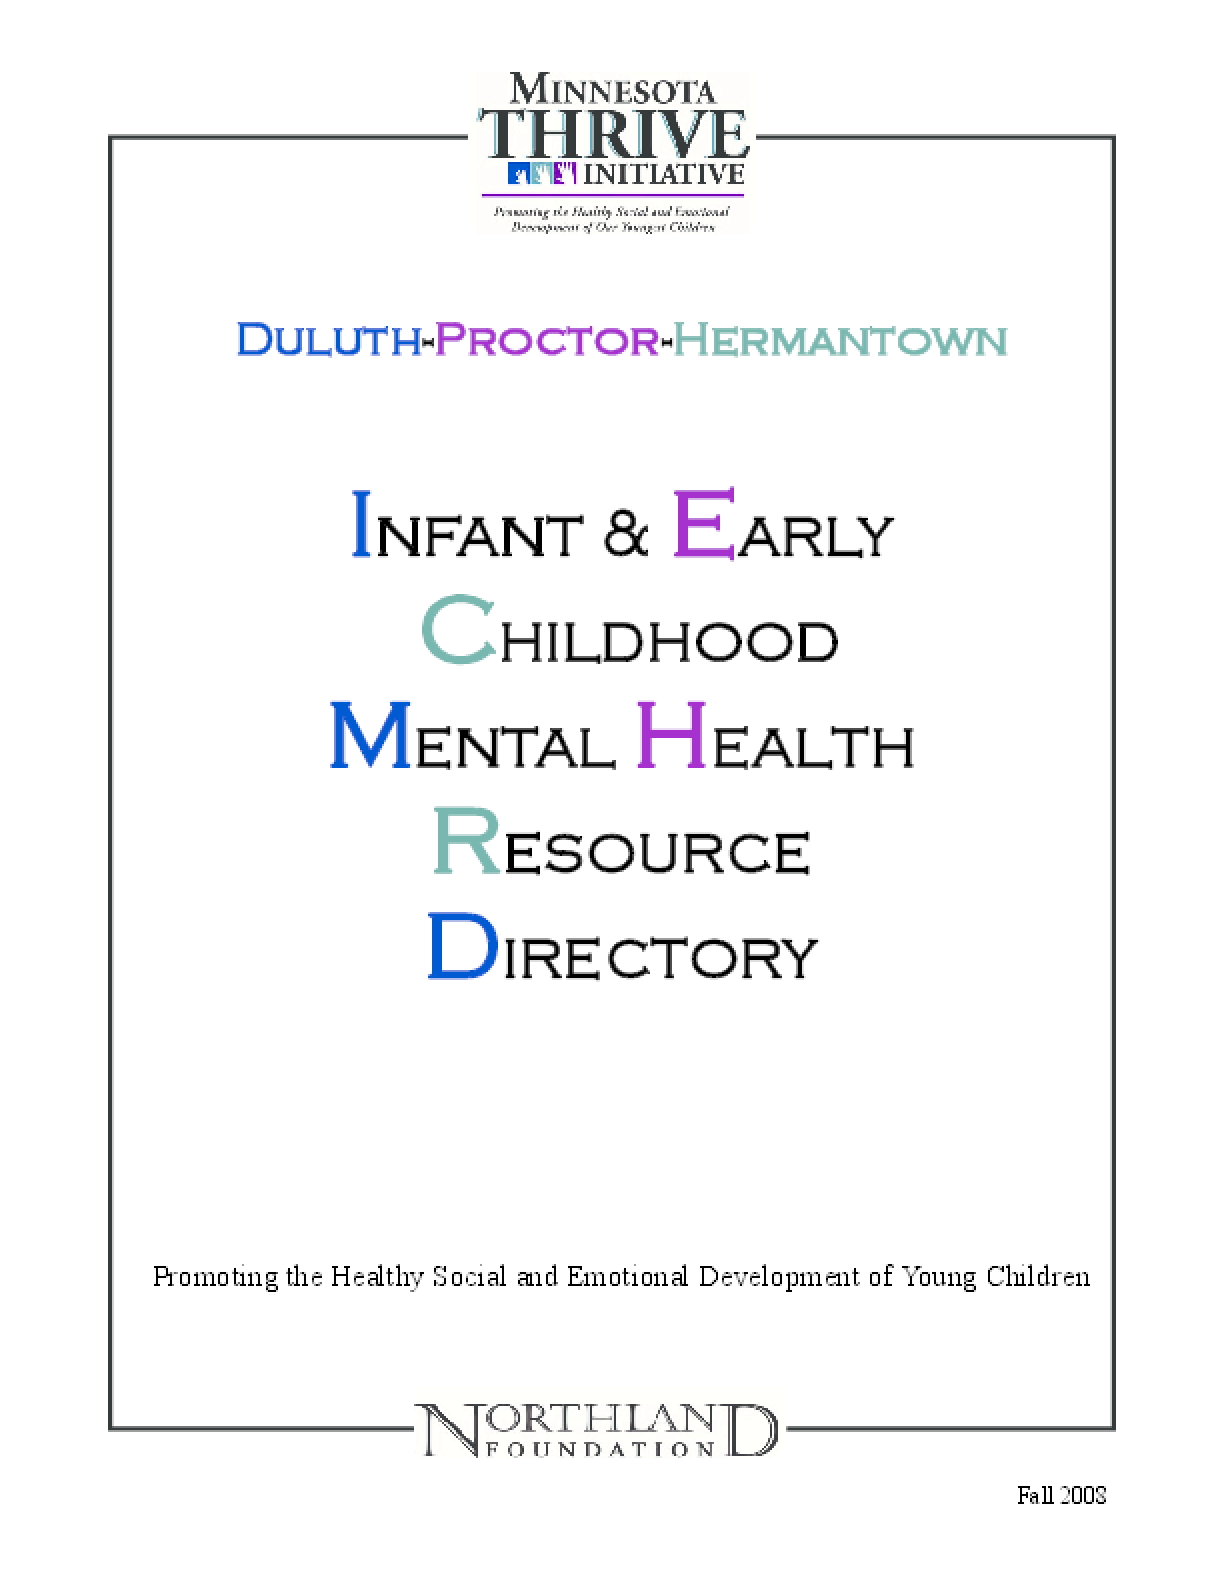 Infant and Early Childhood Mental Health Resource Directory